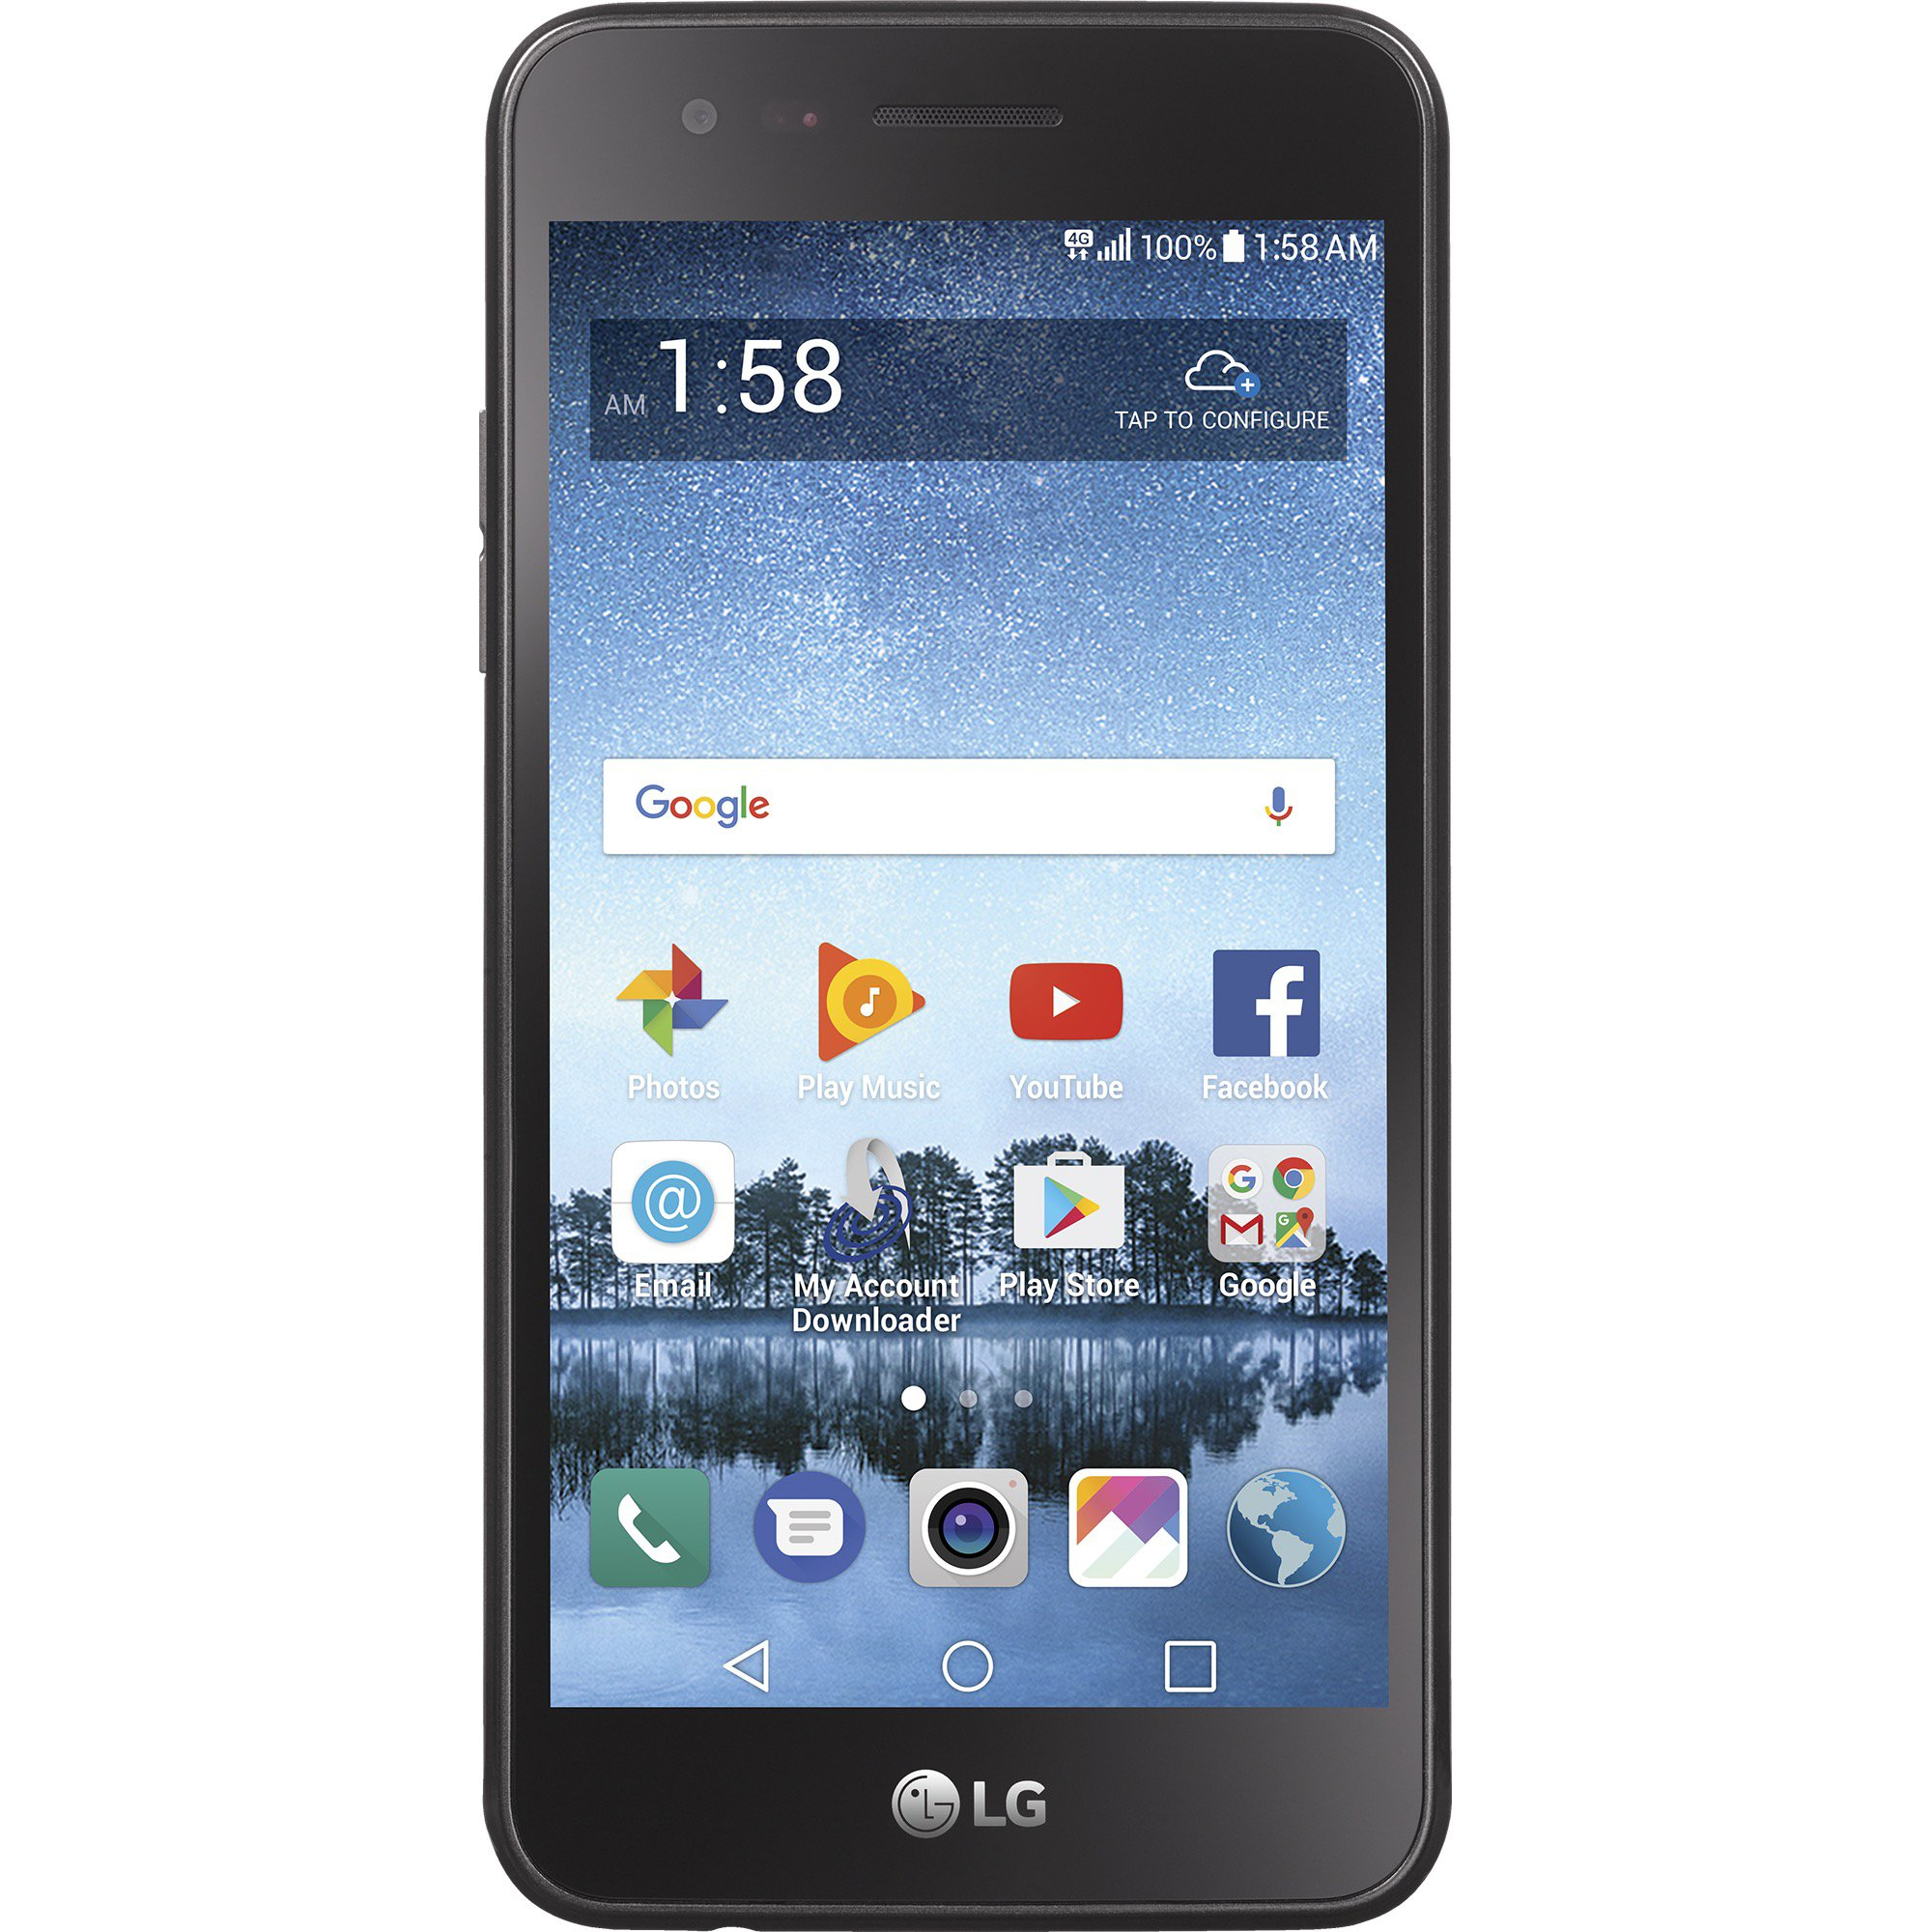 Net10 LG Rebel 3 4G LTE Prepaid Smartphone with Free $40 Airtime Bundle